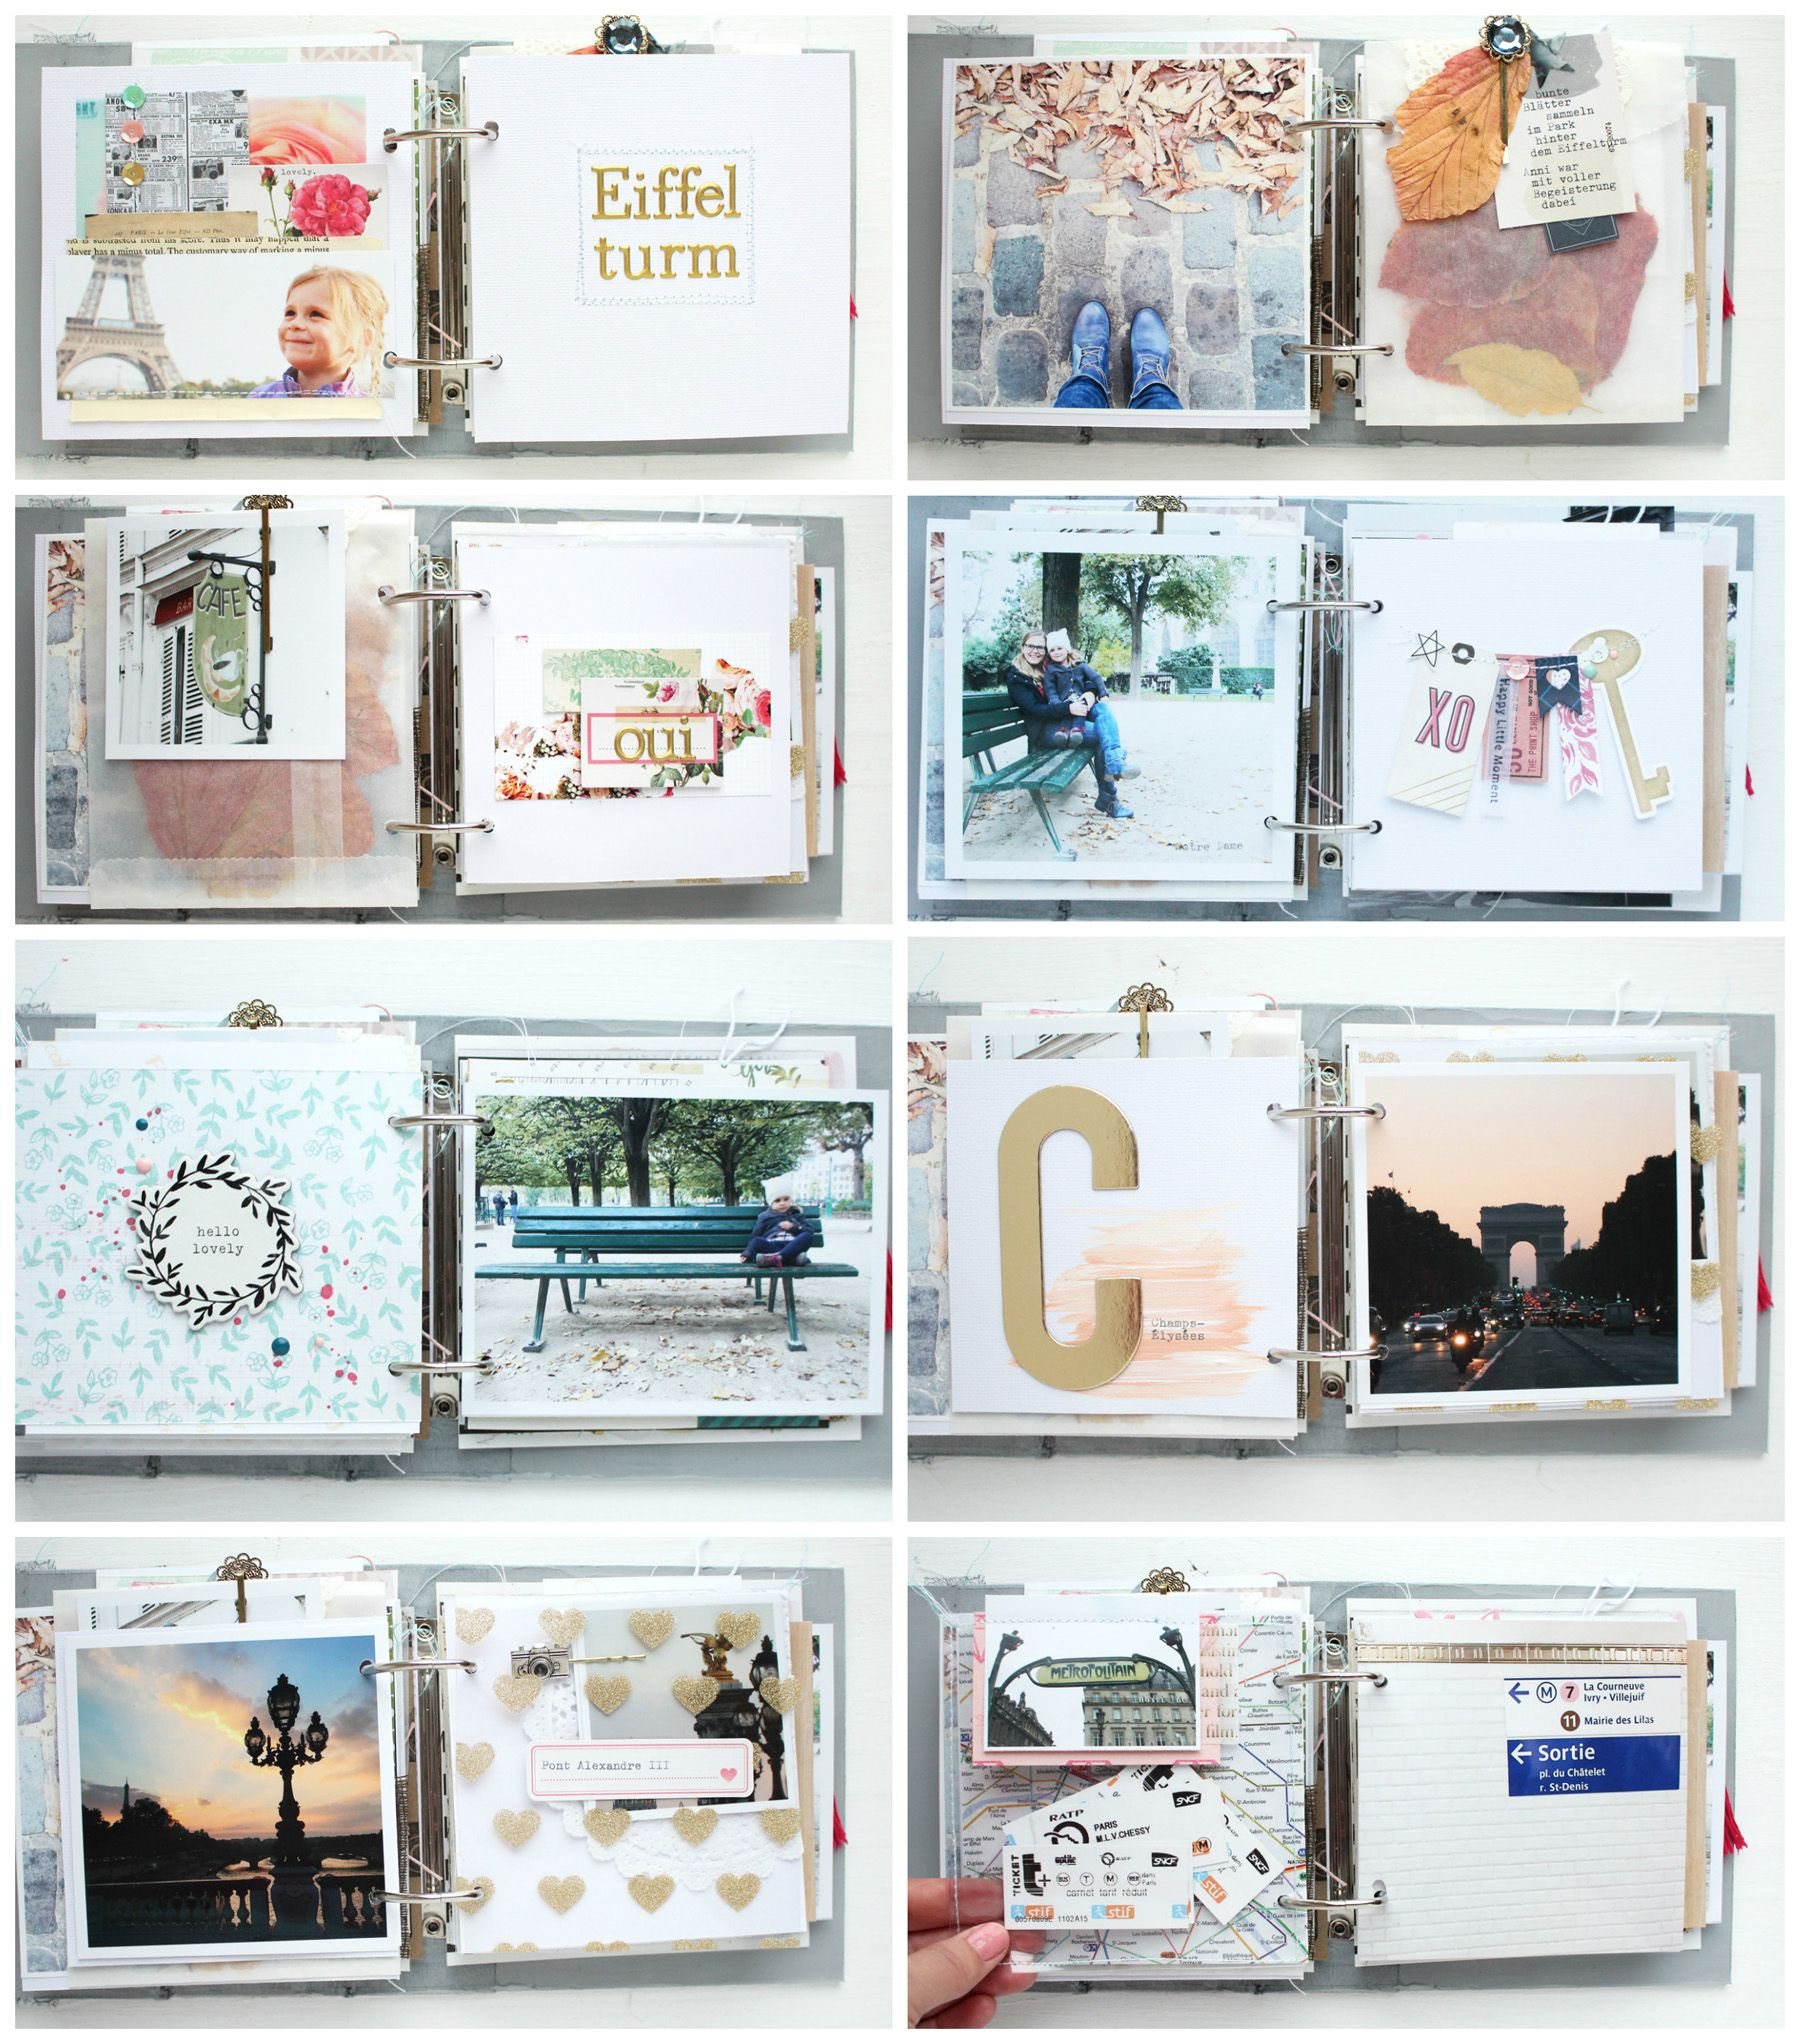 Album Gestalten Mini Album Quotparis Quot Details 2 Steffi Ried Scrapbooking